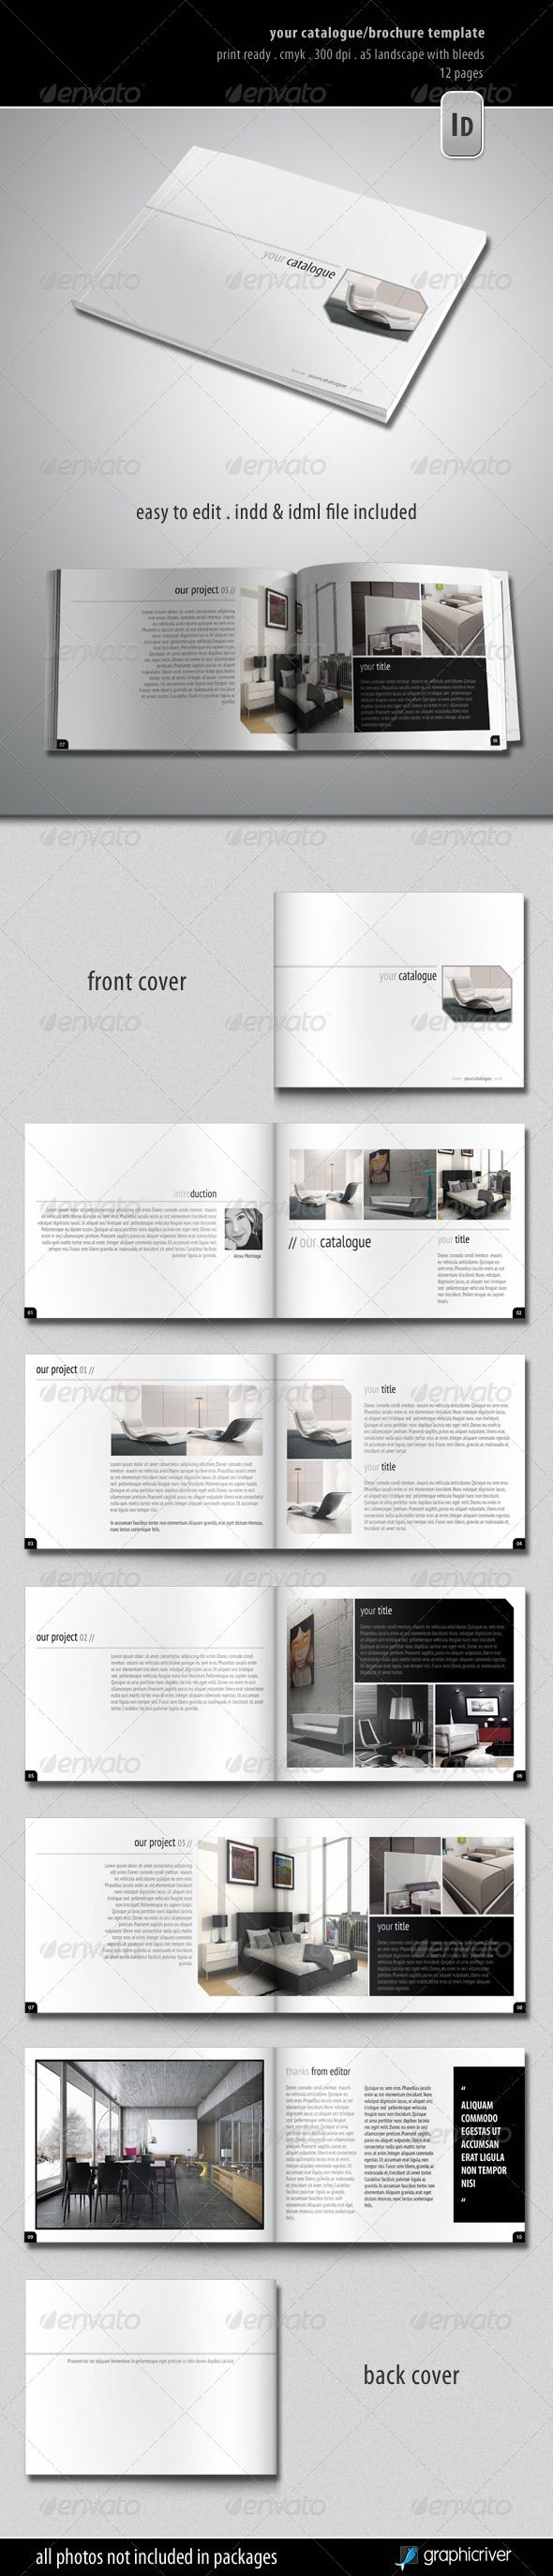 Your Catalogue/Brochure Template - GraphicRiver Item for Sale